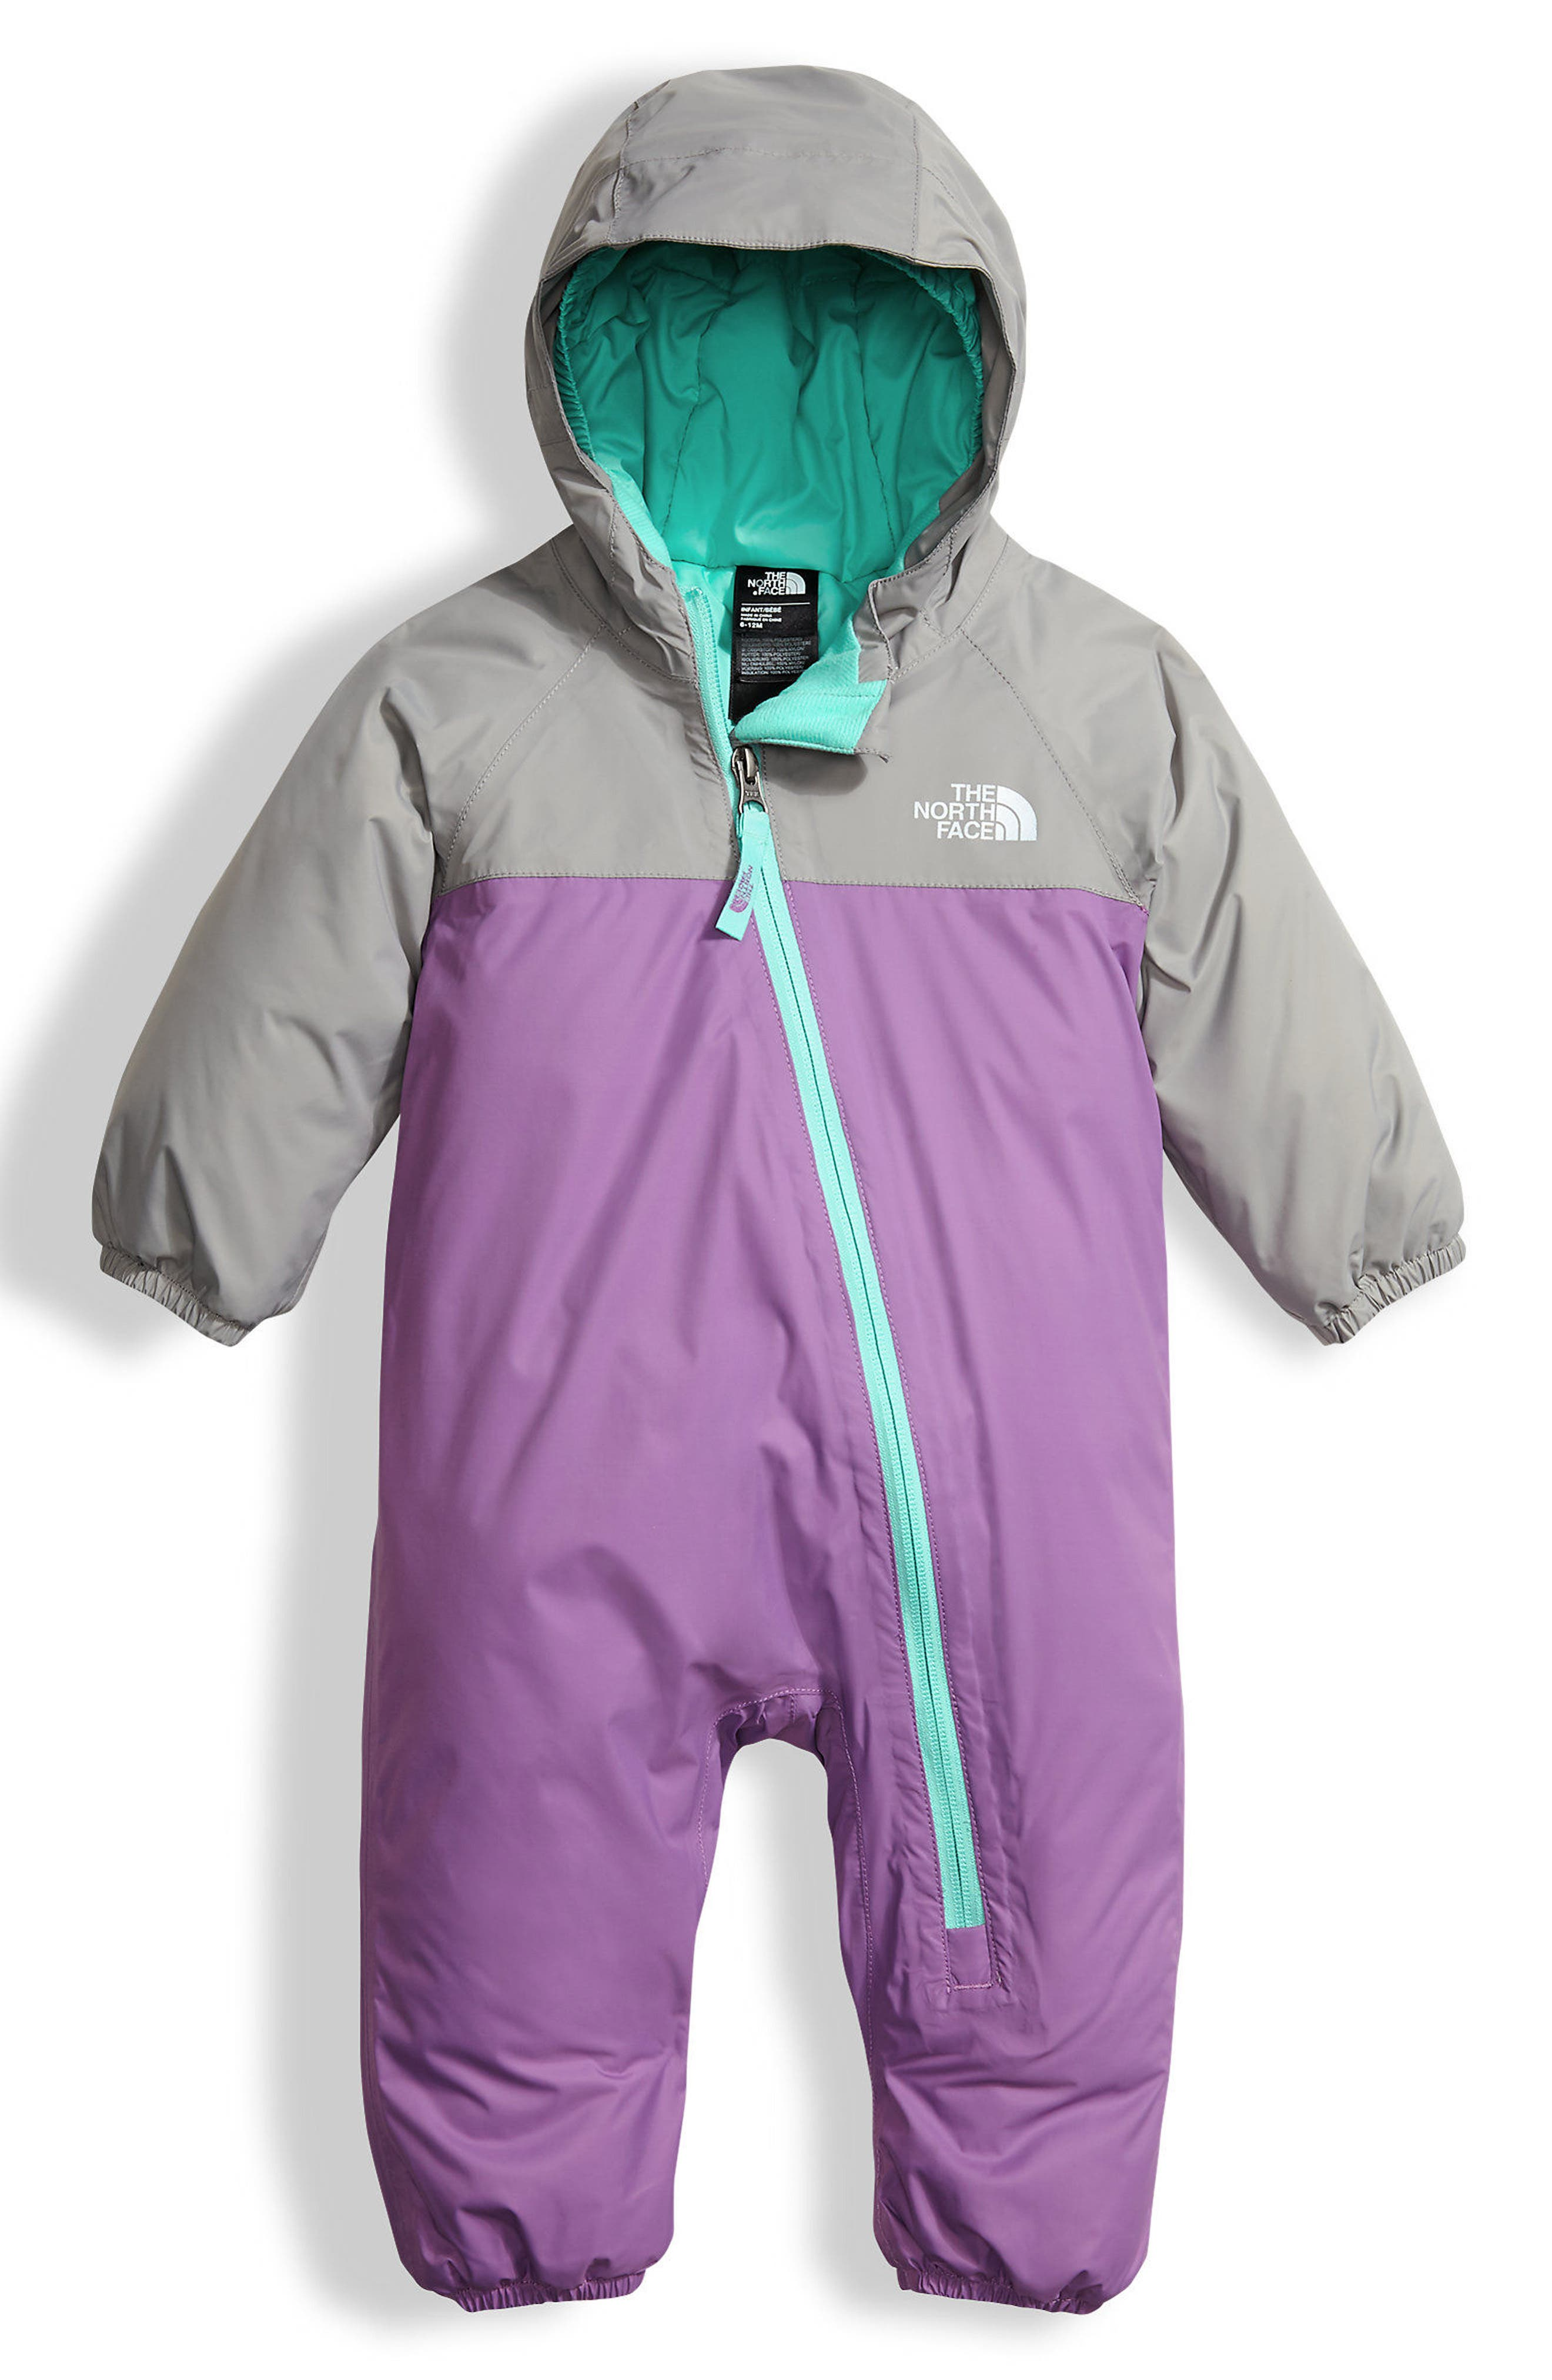 Main Image - The North Face Tailout TriClimate® 3-in-1 One-Piece Rain Suit (Baby Girls)